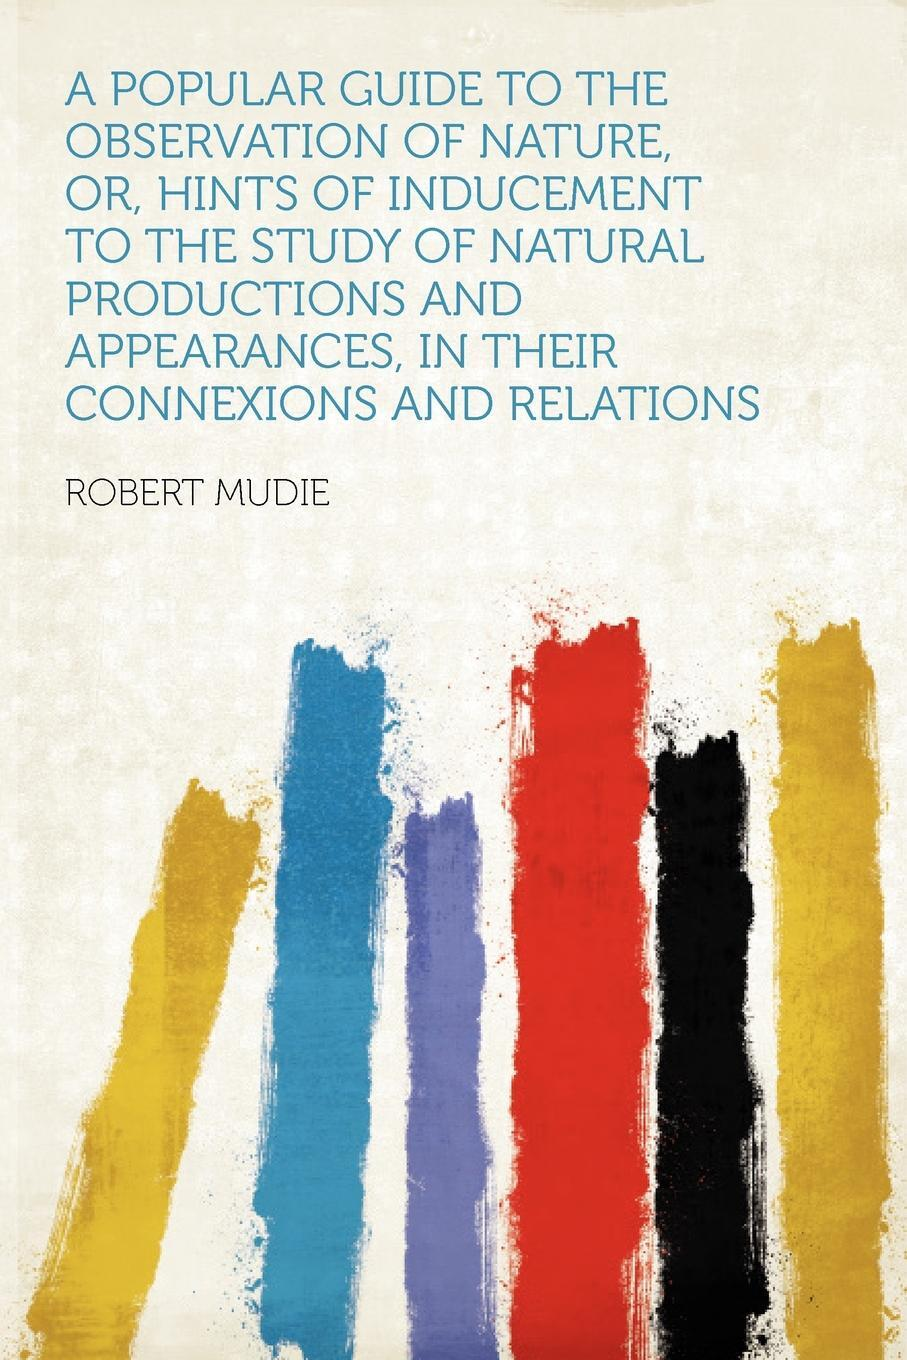 A Popular Guide to the Observation of Nature, Or, Hints of Inducement to the Study of Natural Productions and Appearances, in Their Connexions and Relations. Robert Mudie